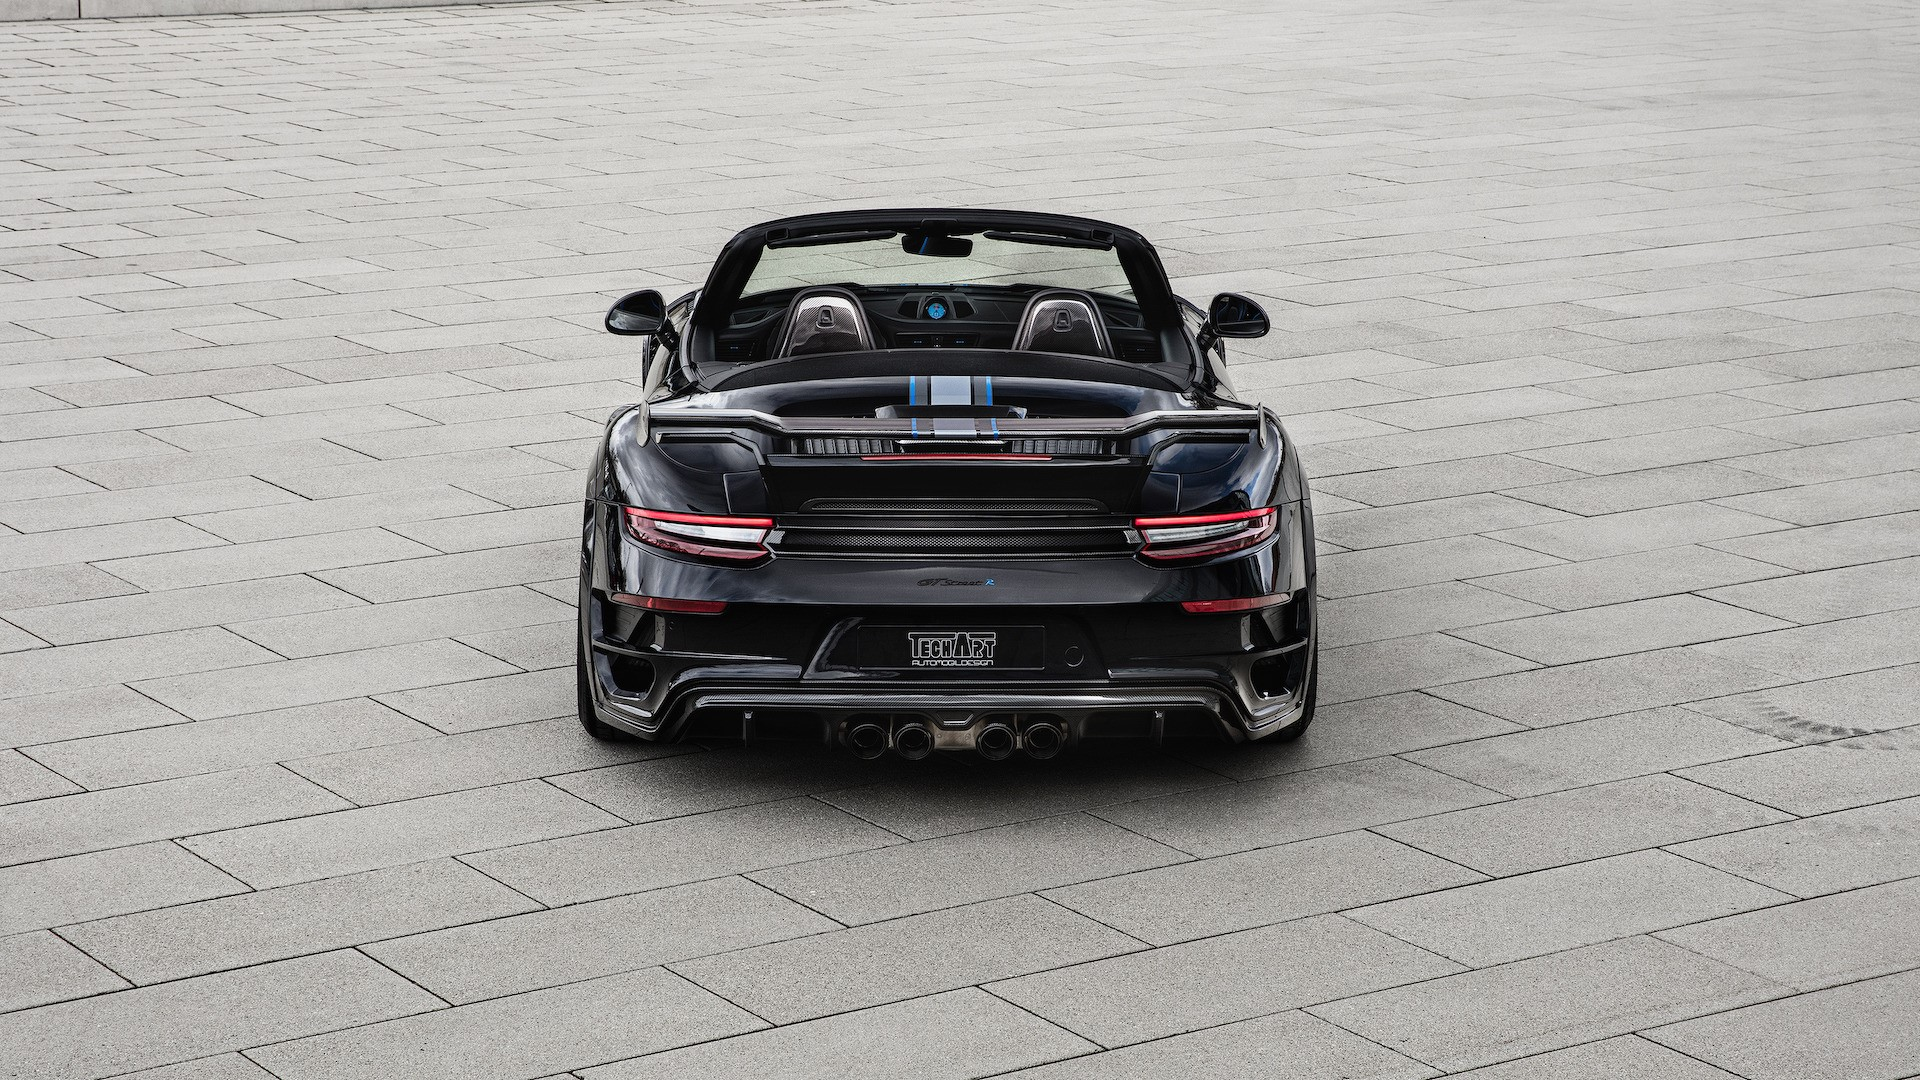 Porshce 911 Turbo Cabriolet by Techart (4)